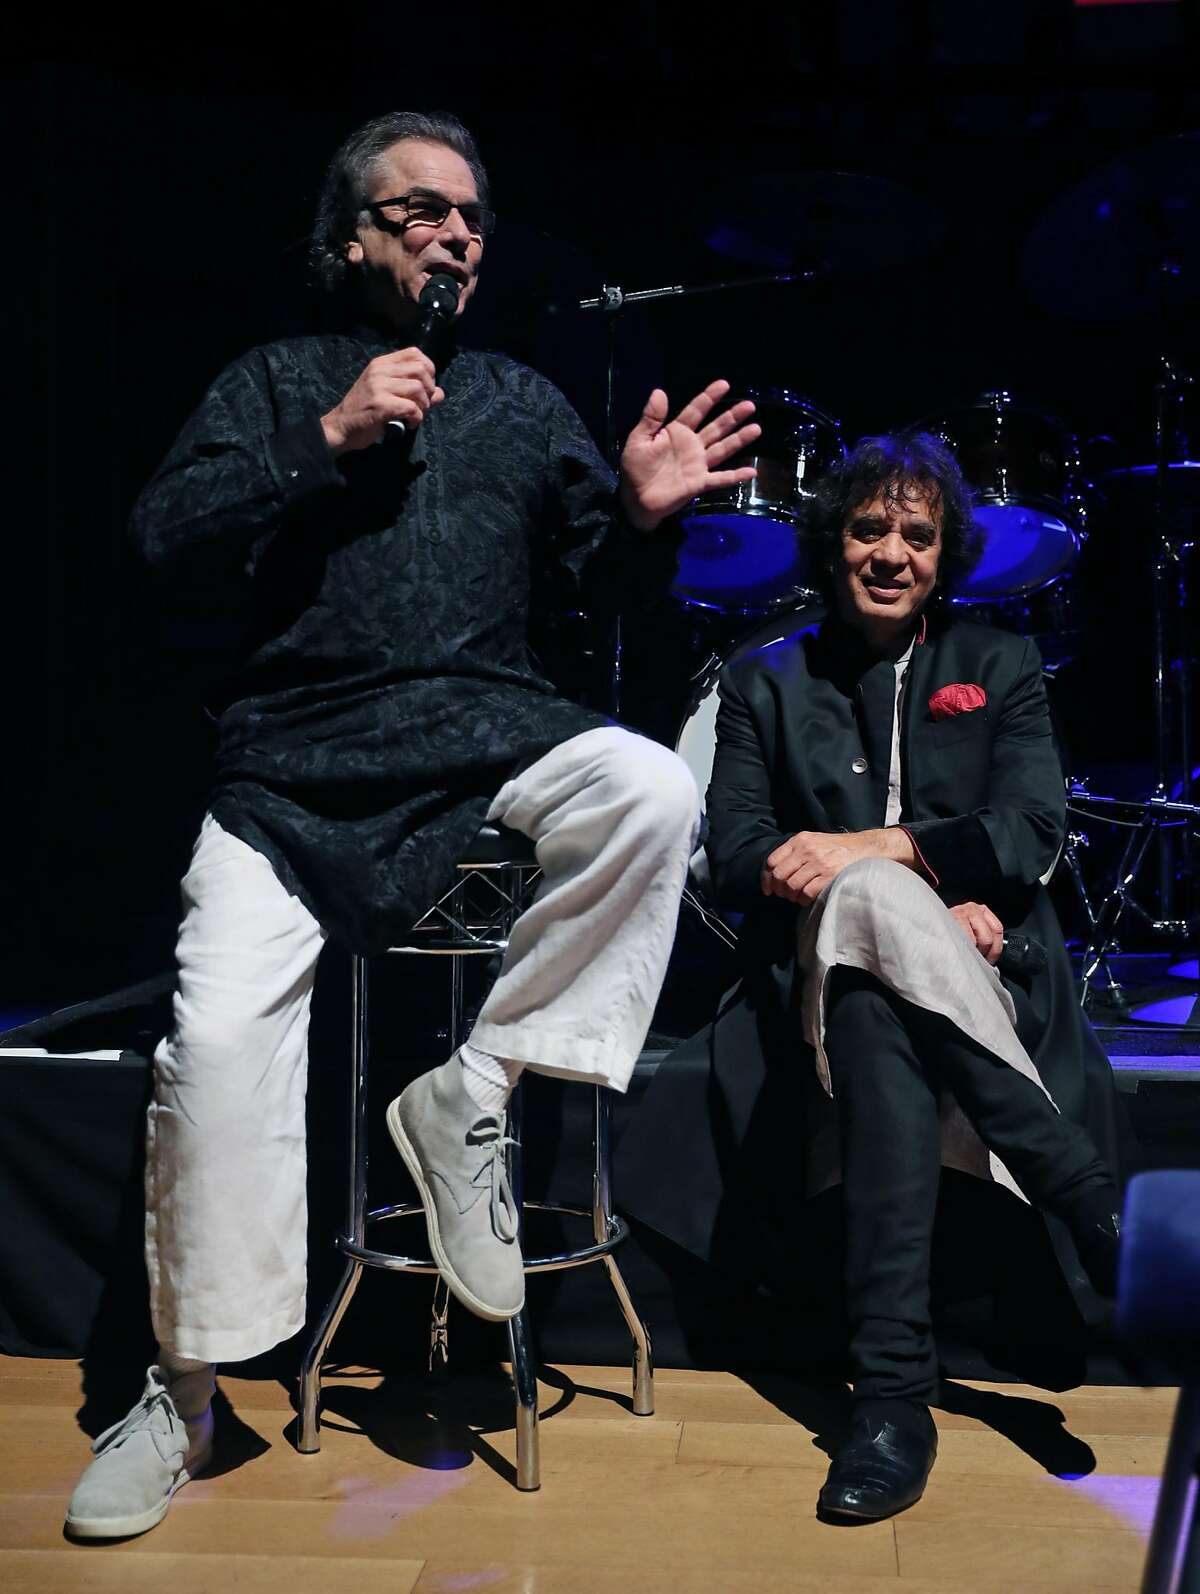 Mickey Hart talks about percussionist Zakir Hussain before awarding him the SFJAZZ Lifetime Achievement Award during SFJazz Gala in San Francisco, Calif., on Wednesday, January 18, 2017.